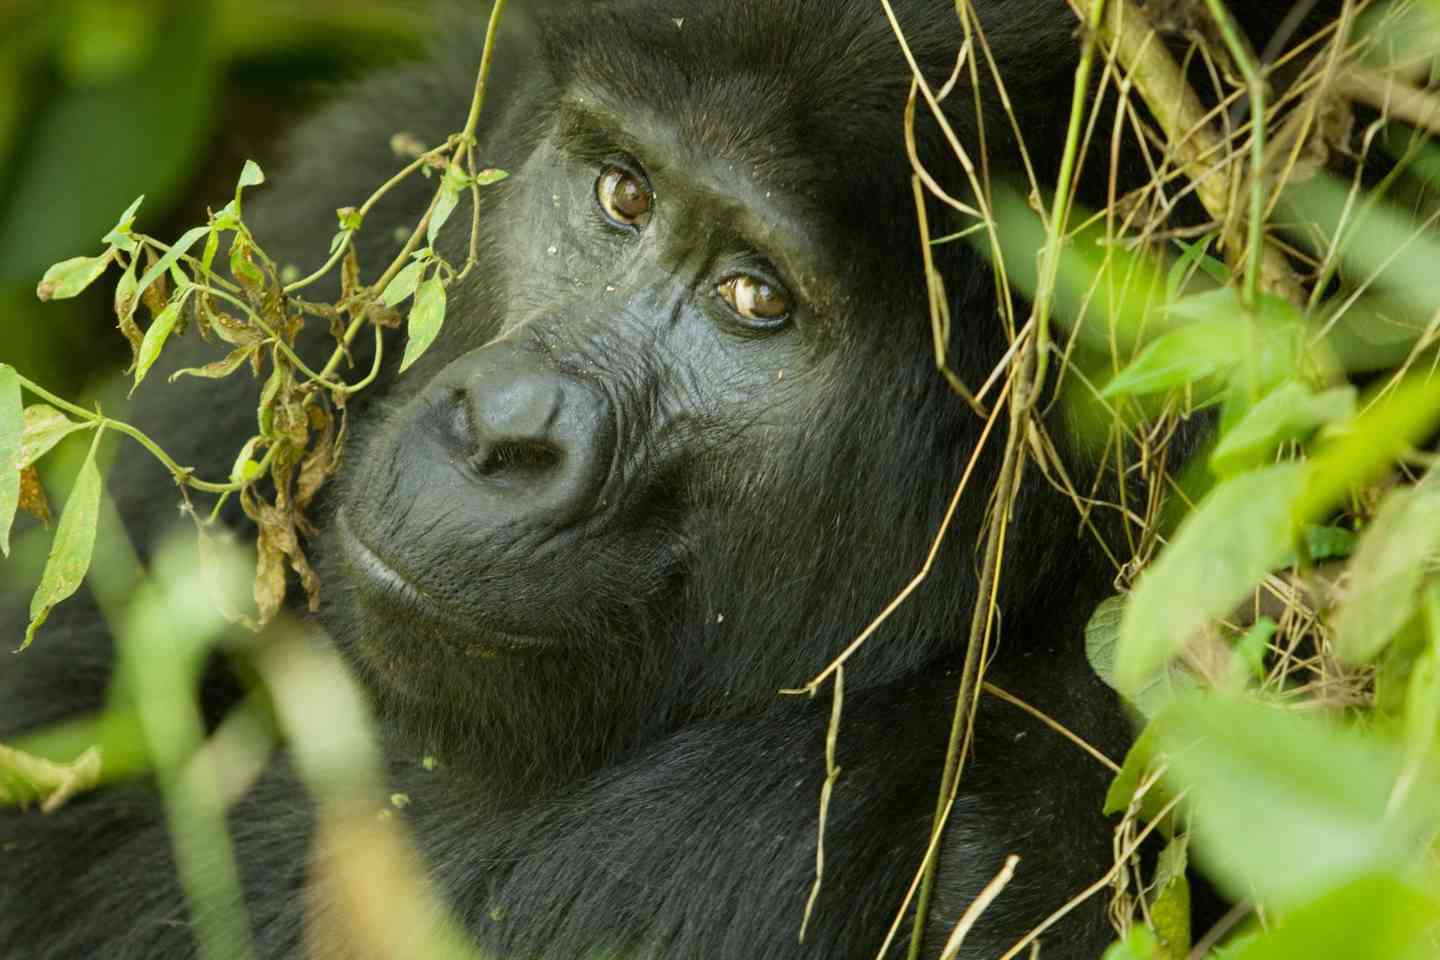 Urth Caffé and Uganda's Endangered Mountain Gorillas